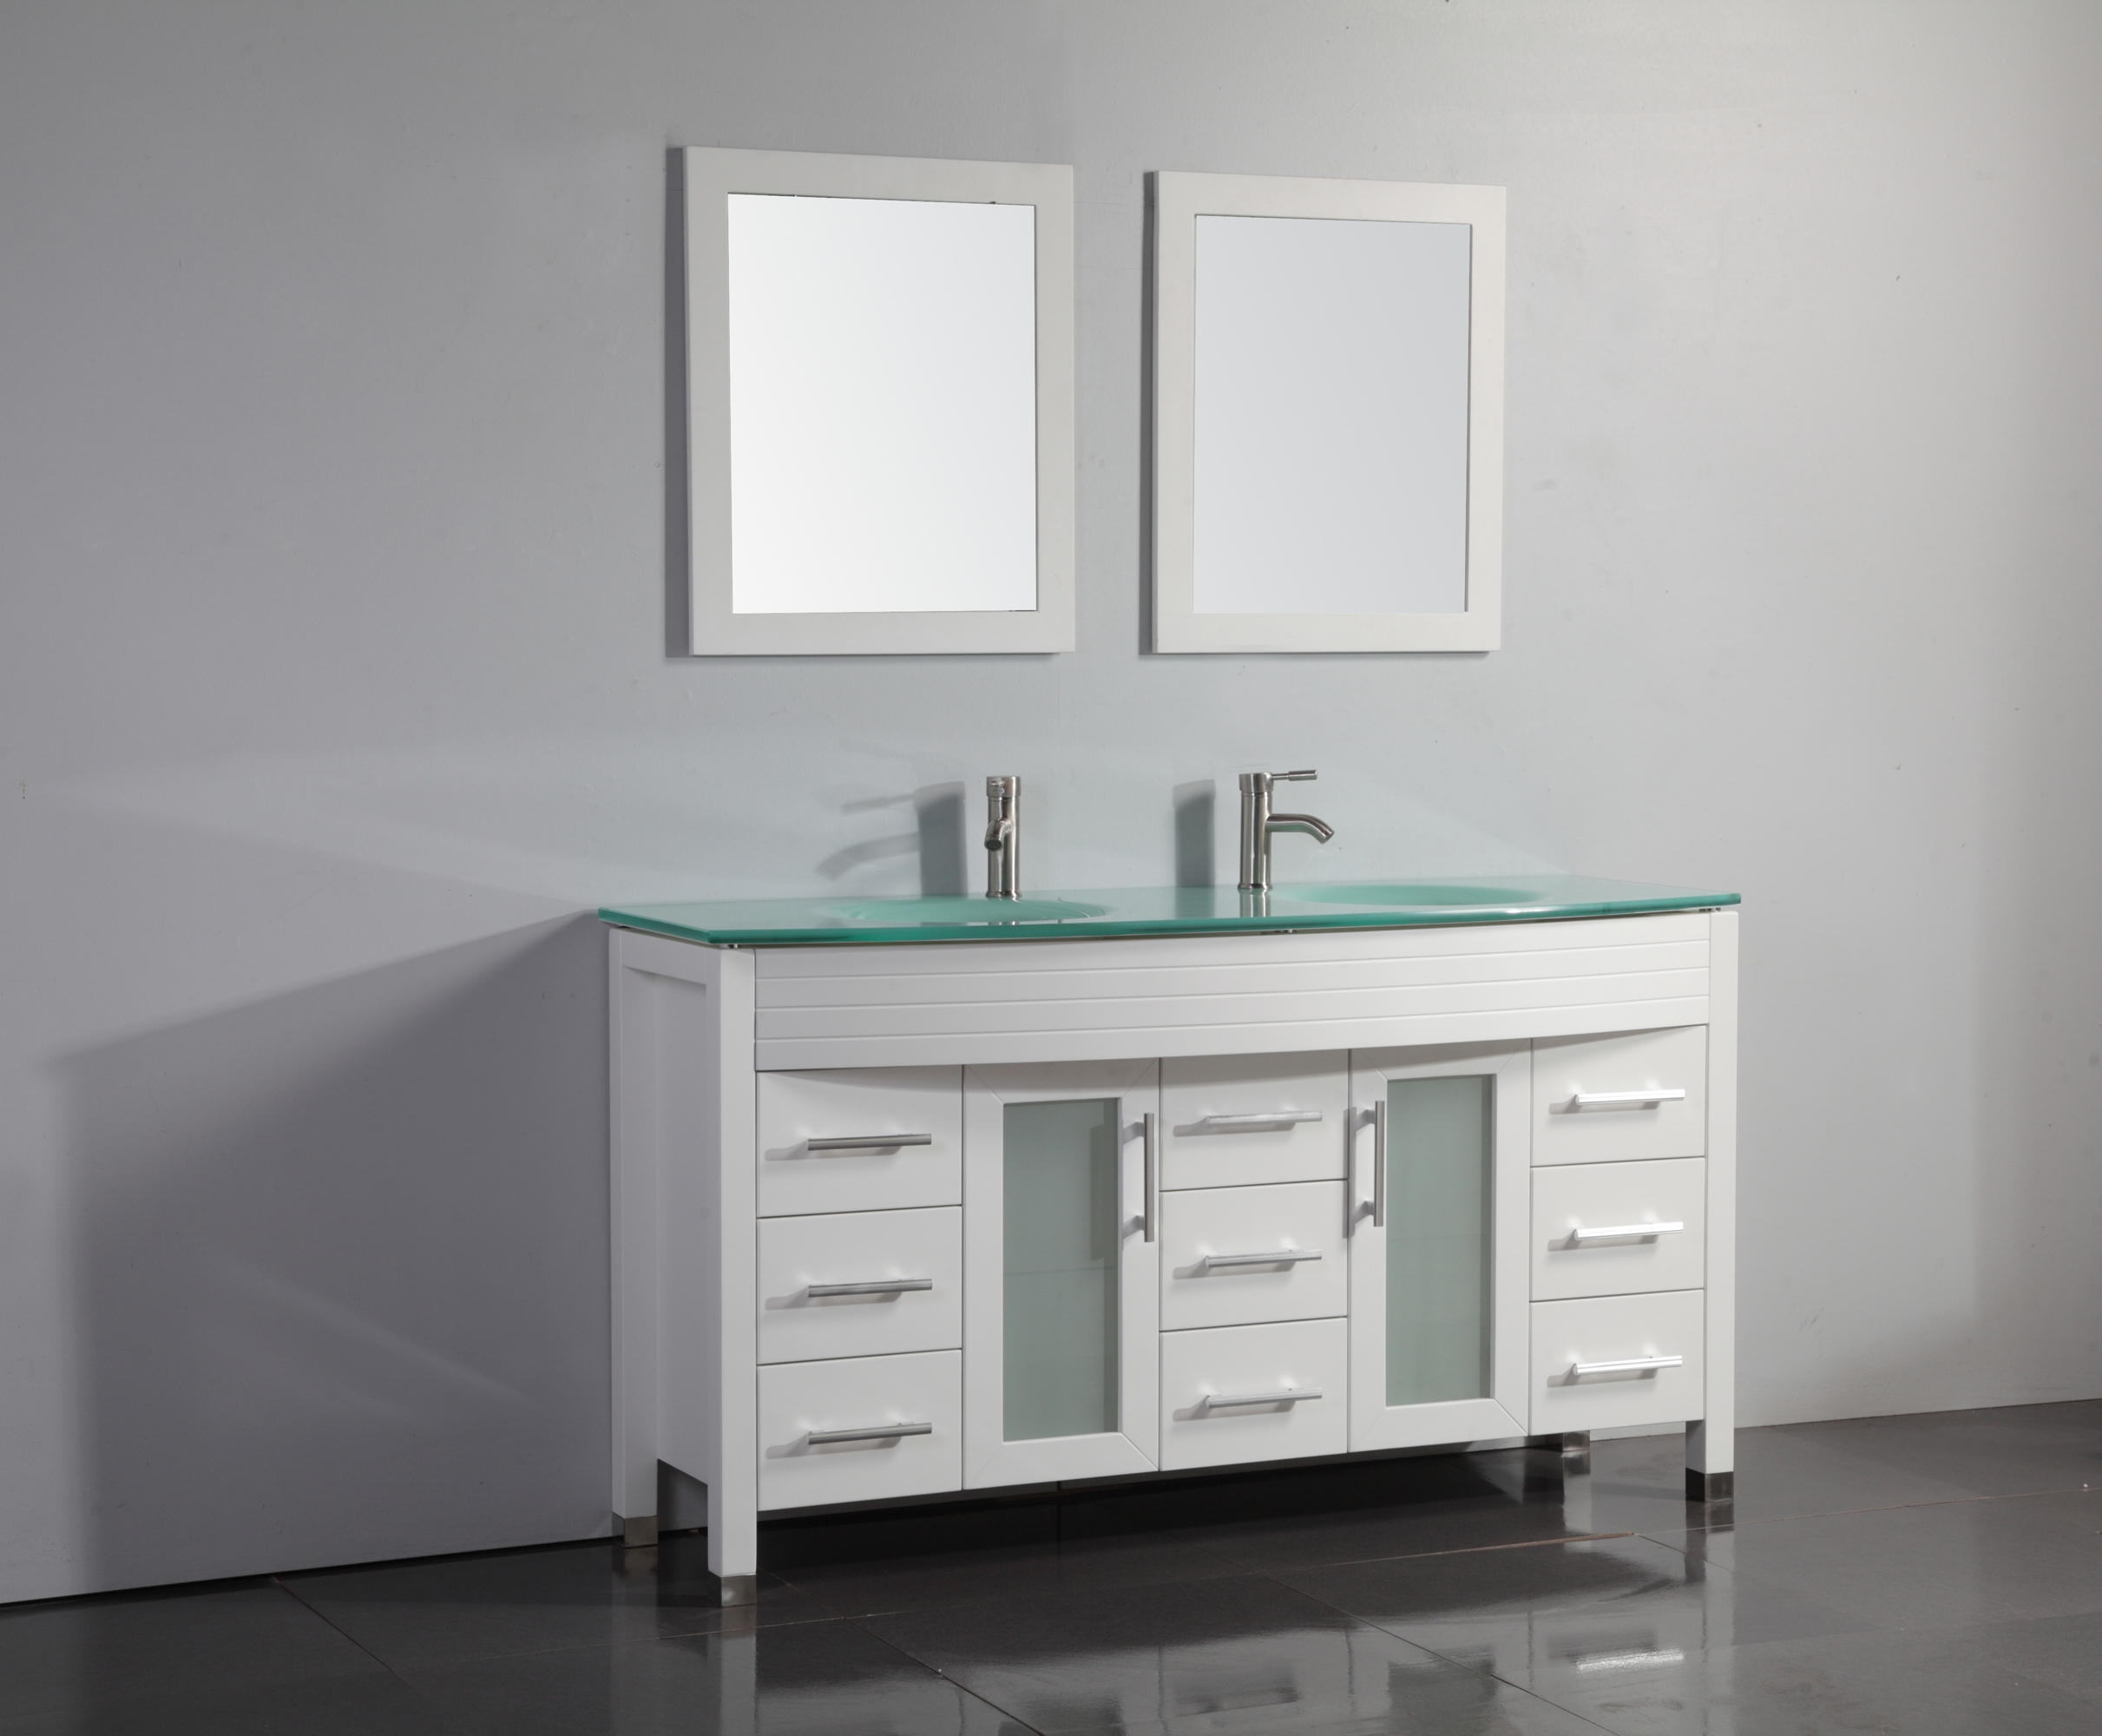 Bathroom Vanities Los Angeles new products : 50% off bathroom vanities in los angeles | los